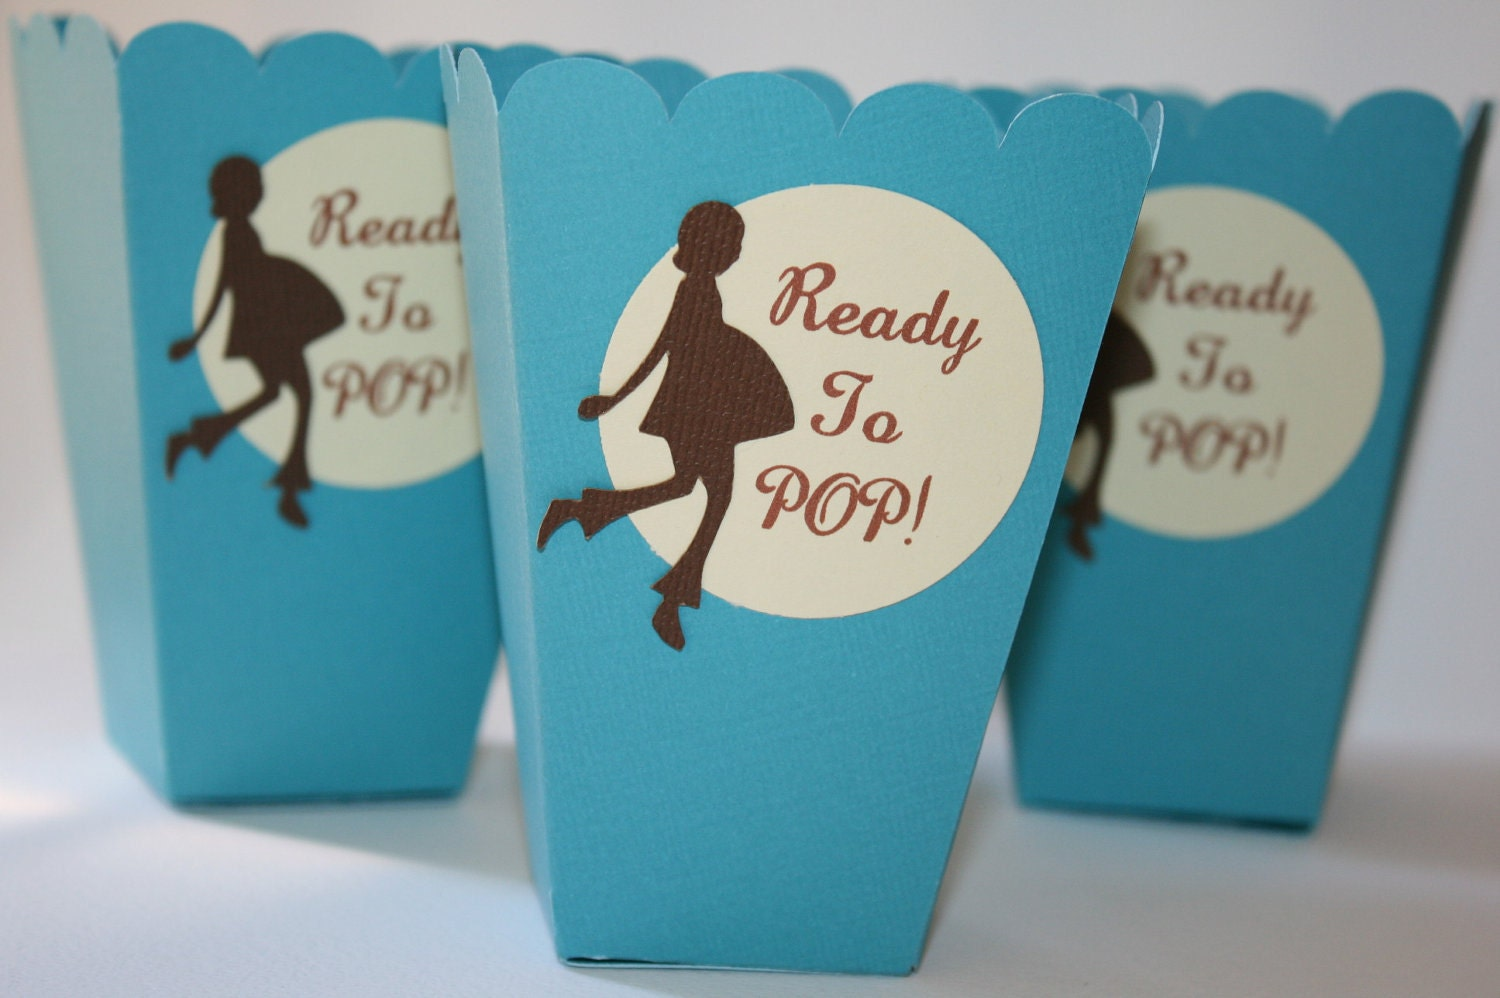 Items similar to 25 popcorn boxes ready to pop choose your colors on etsy for Ready to pop popcorn boxes